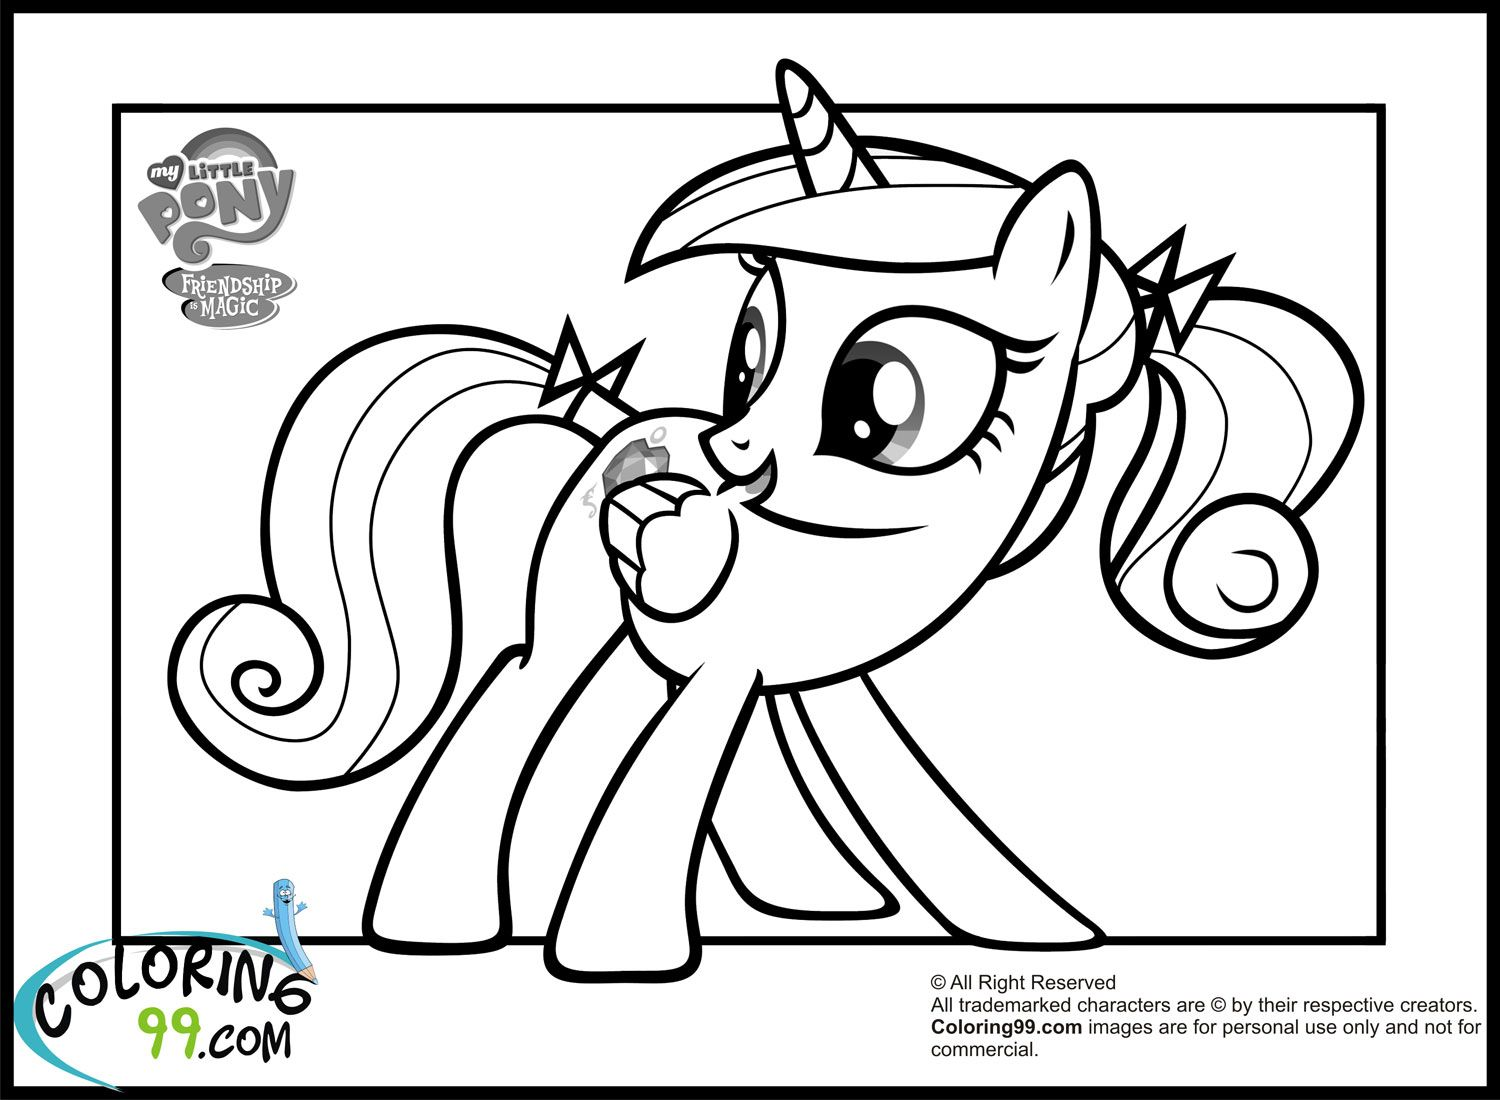 Vintage my little pony coloring pages - My Little Pony Coloring Pages Google S Gning